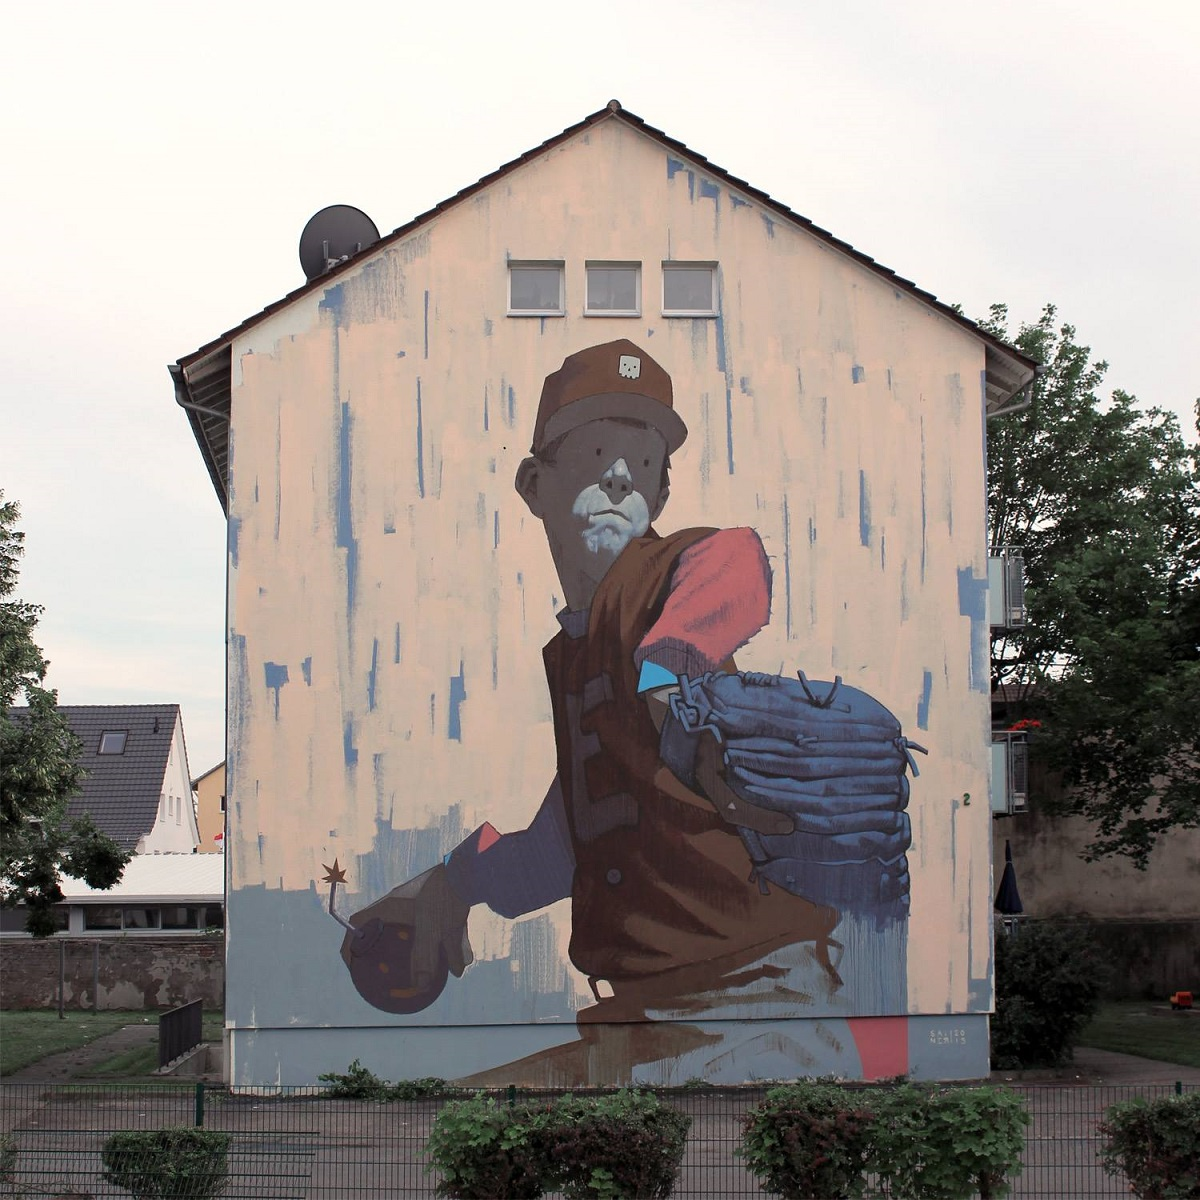 etam-cru-new-mural-in-weil-am-rhein-by-sainer-01